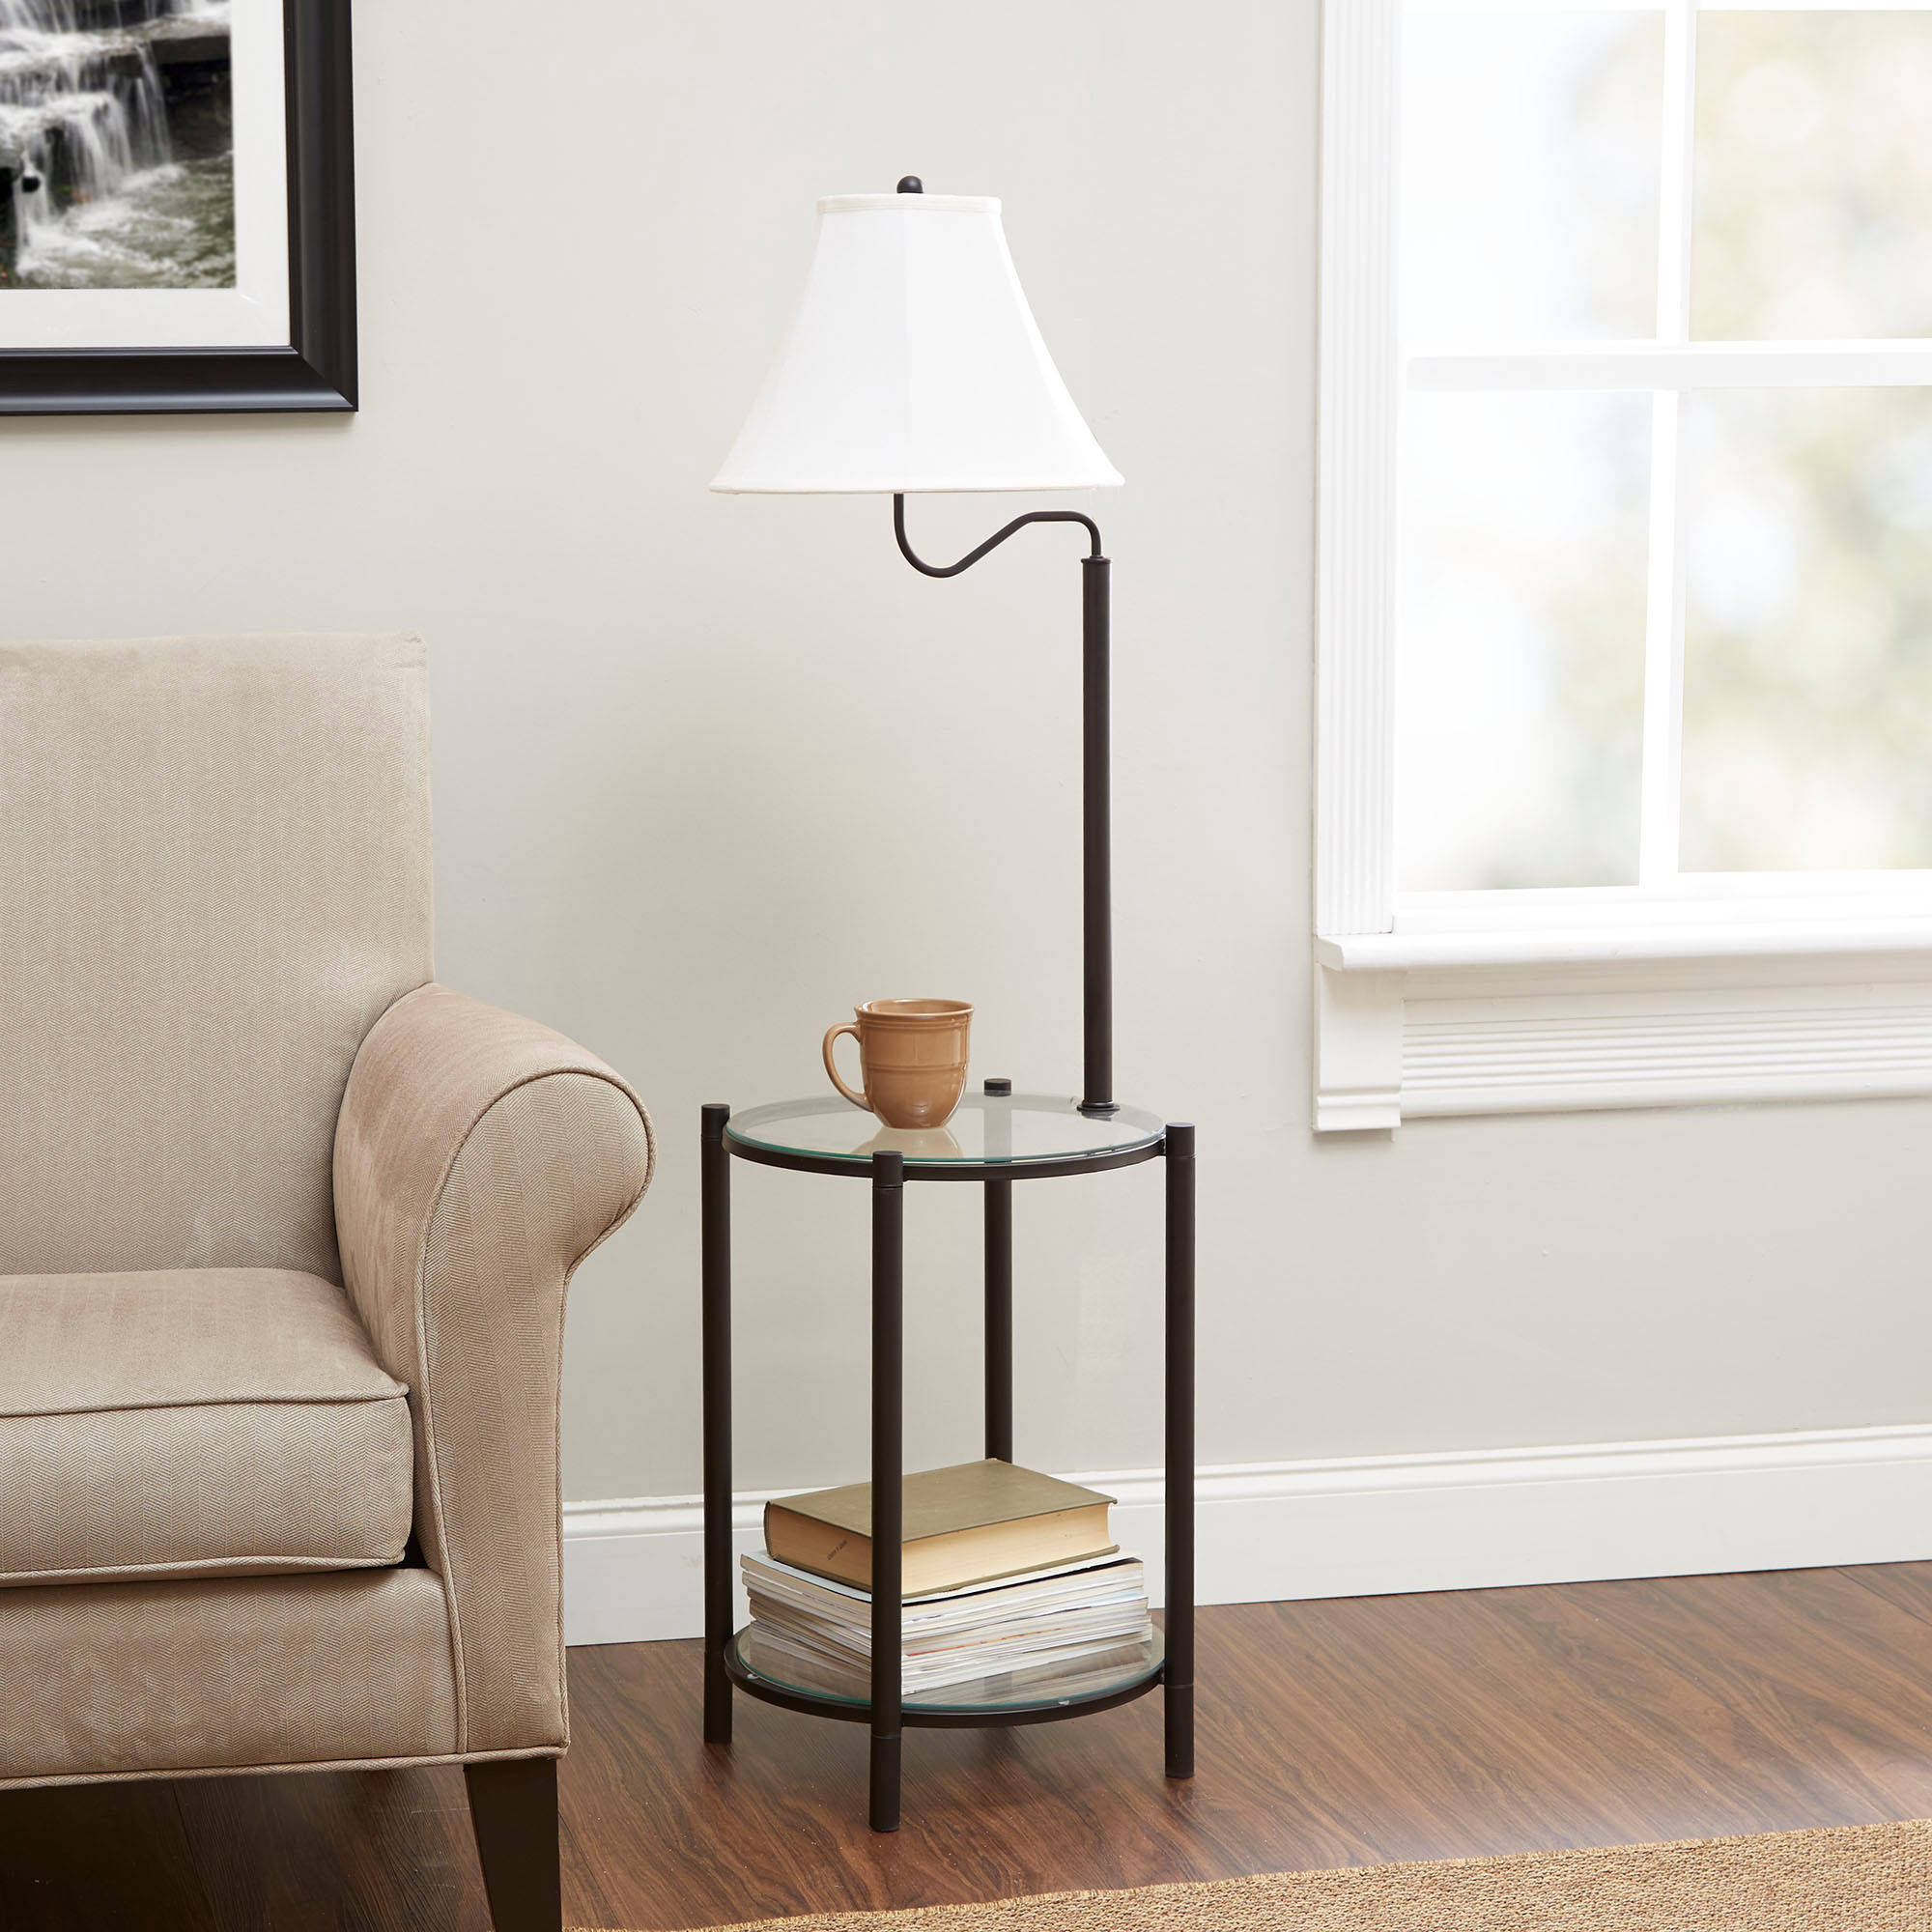 Mainstays Glass End Table Lamp, Matte Black